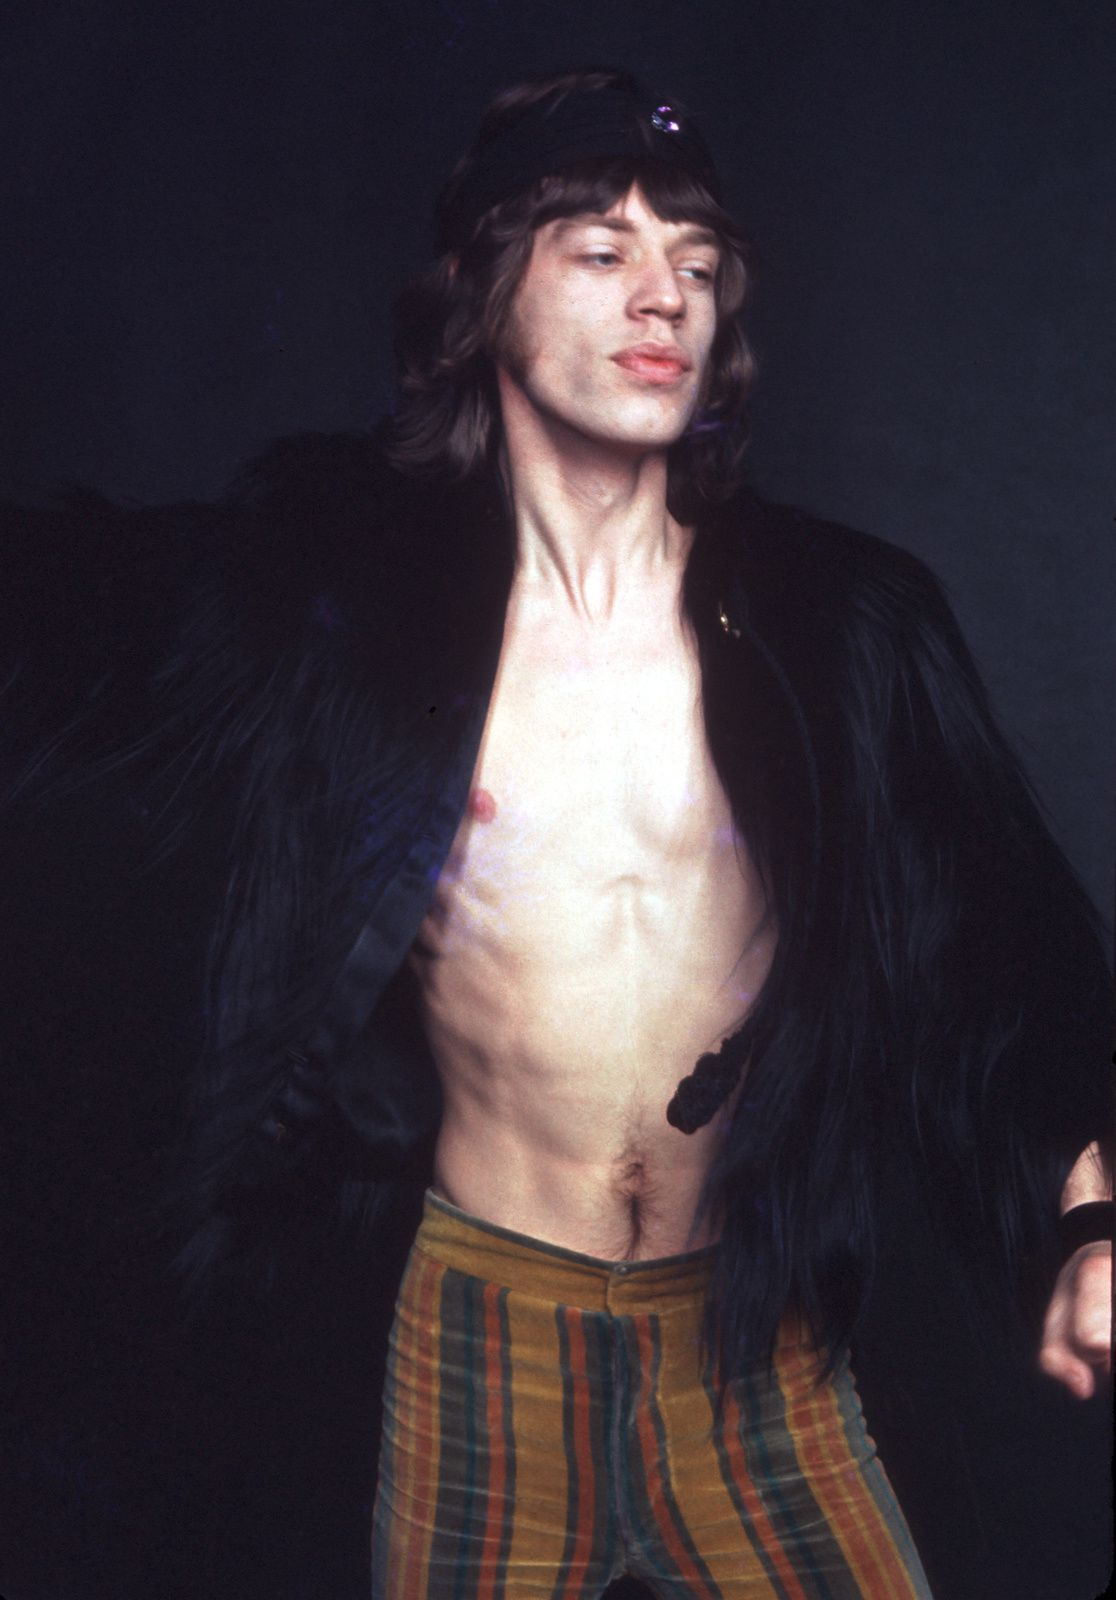 Mick Jagger, The Rolling Stones (1969) - Photo by Michael Ochs Archives/Getty Images